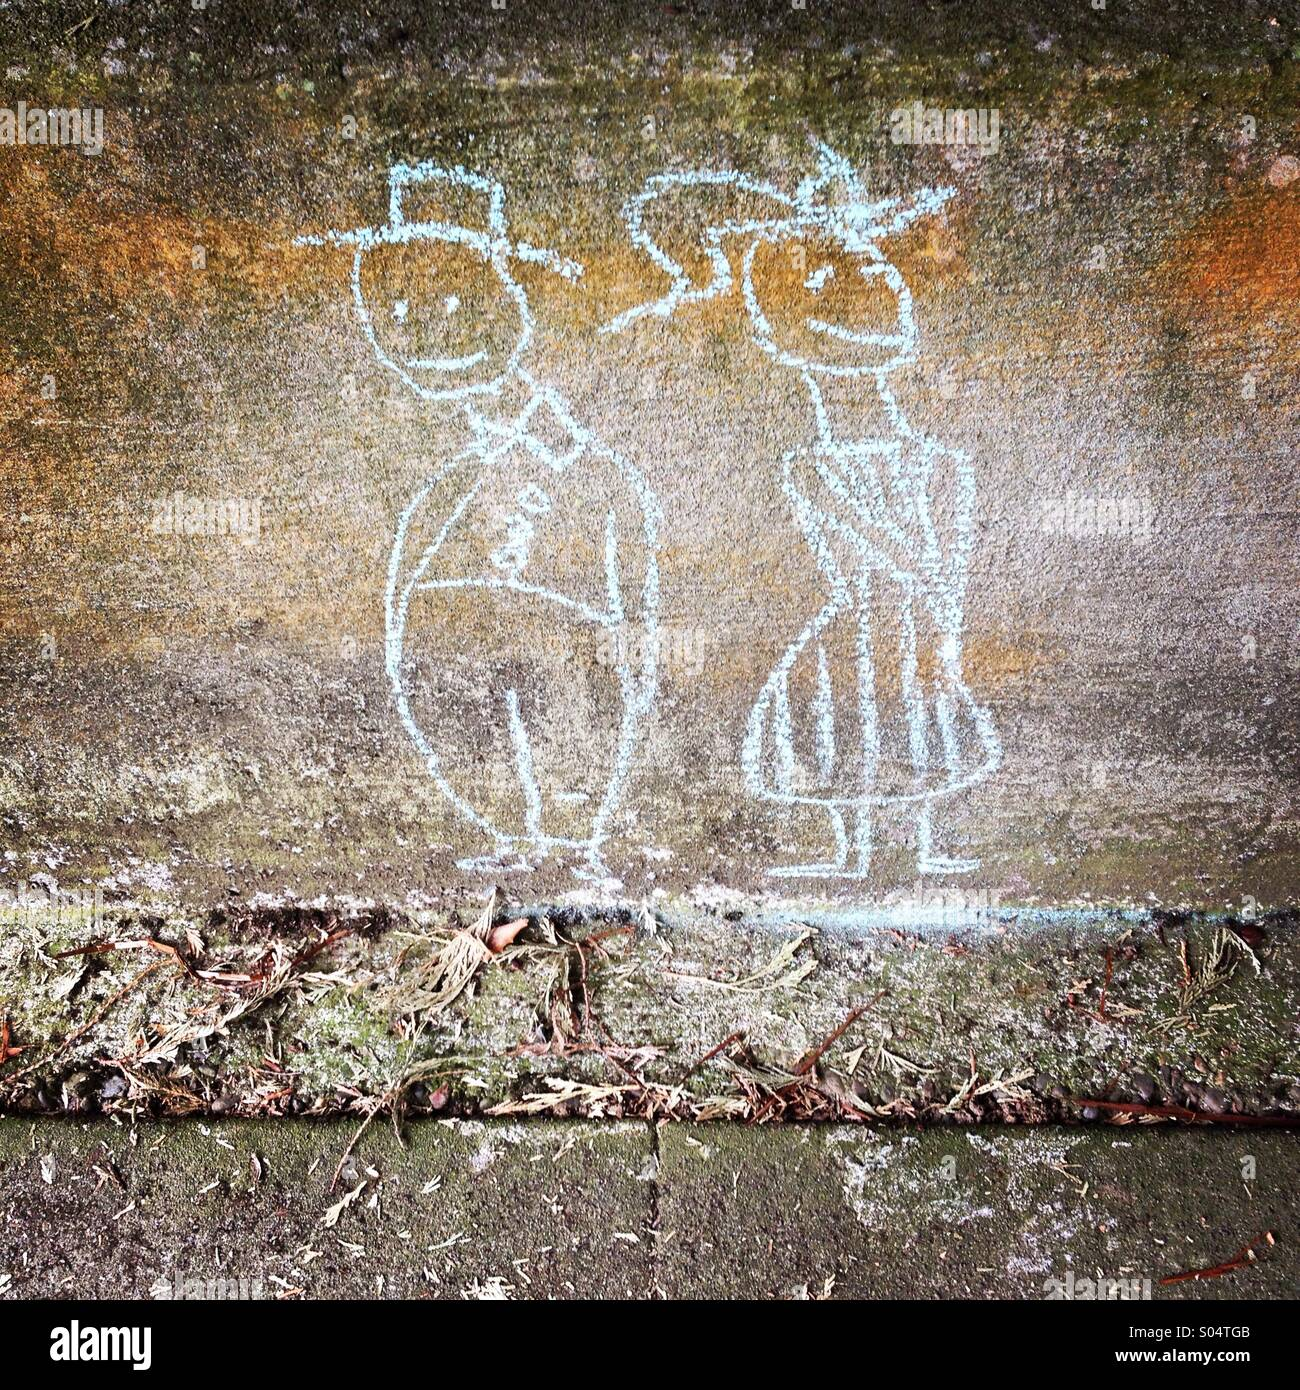 Street art chalk drawing of a couple - Stock Image